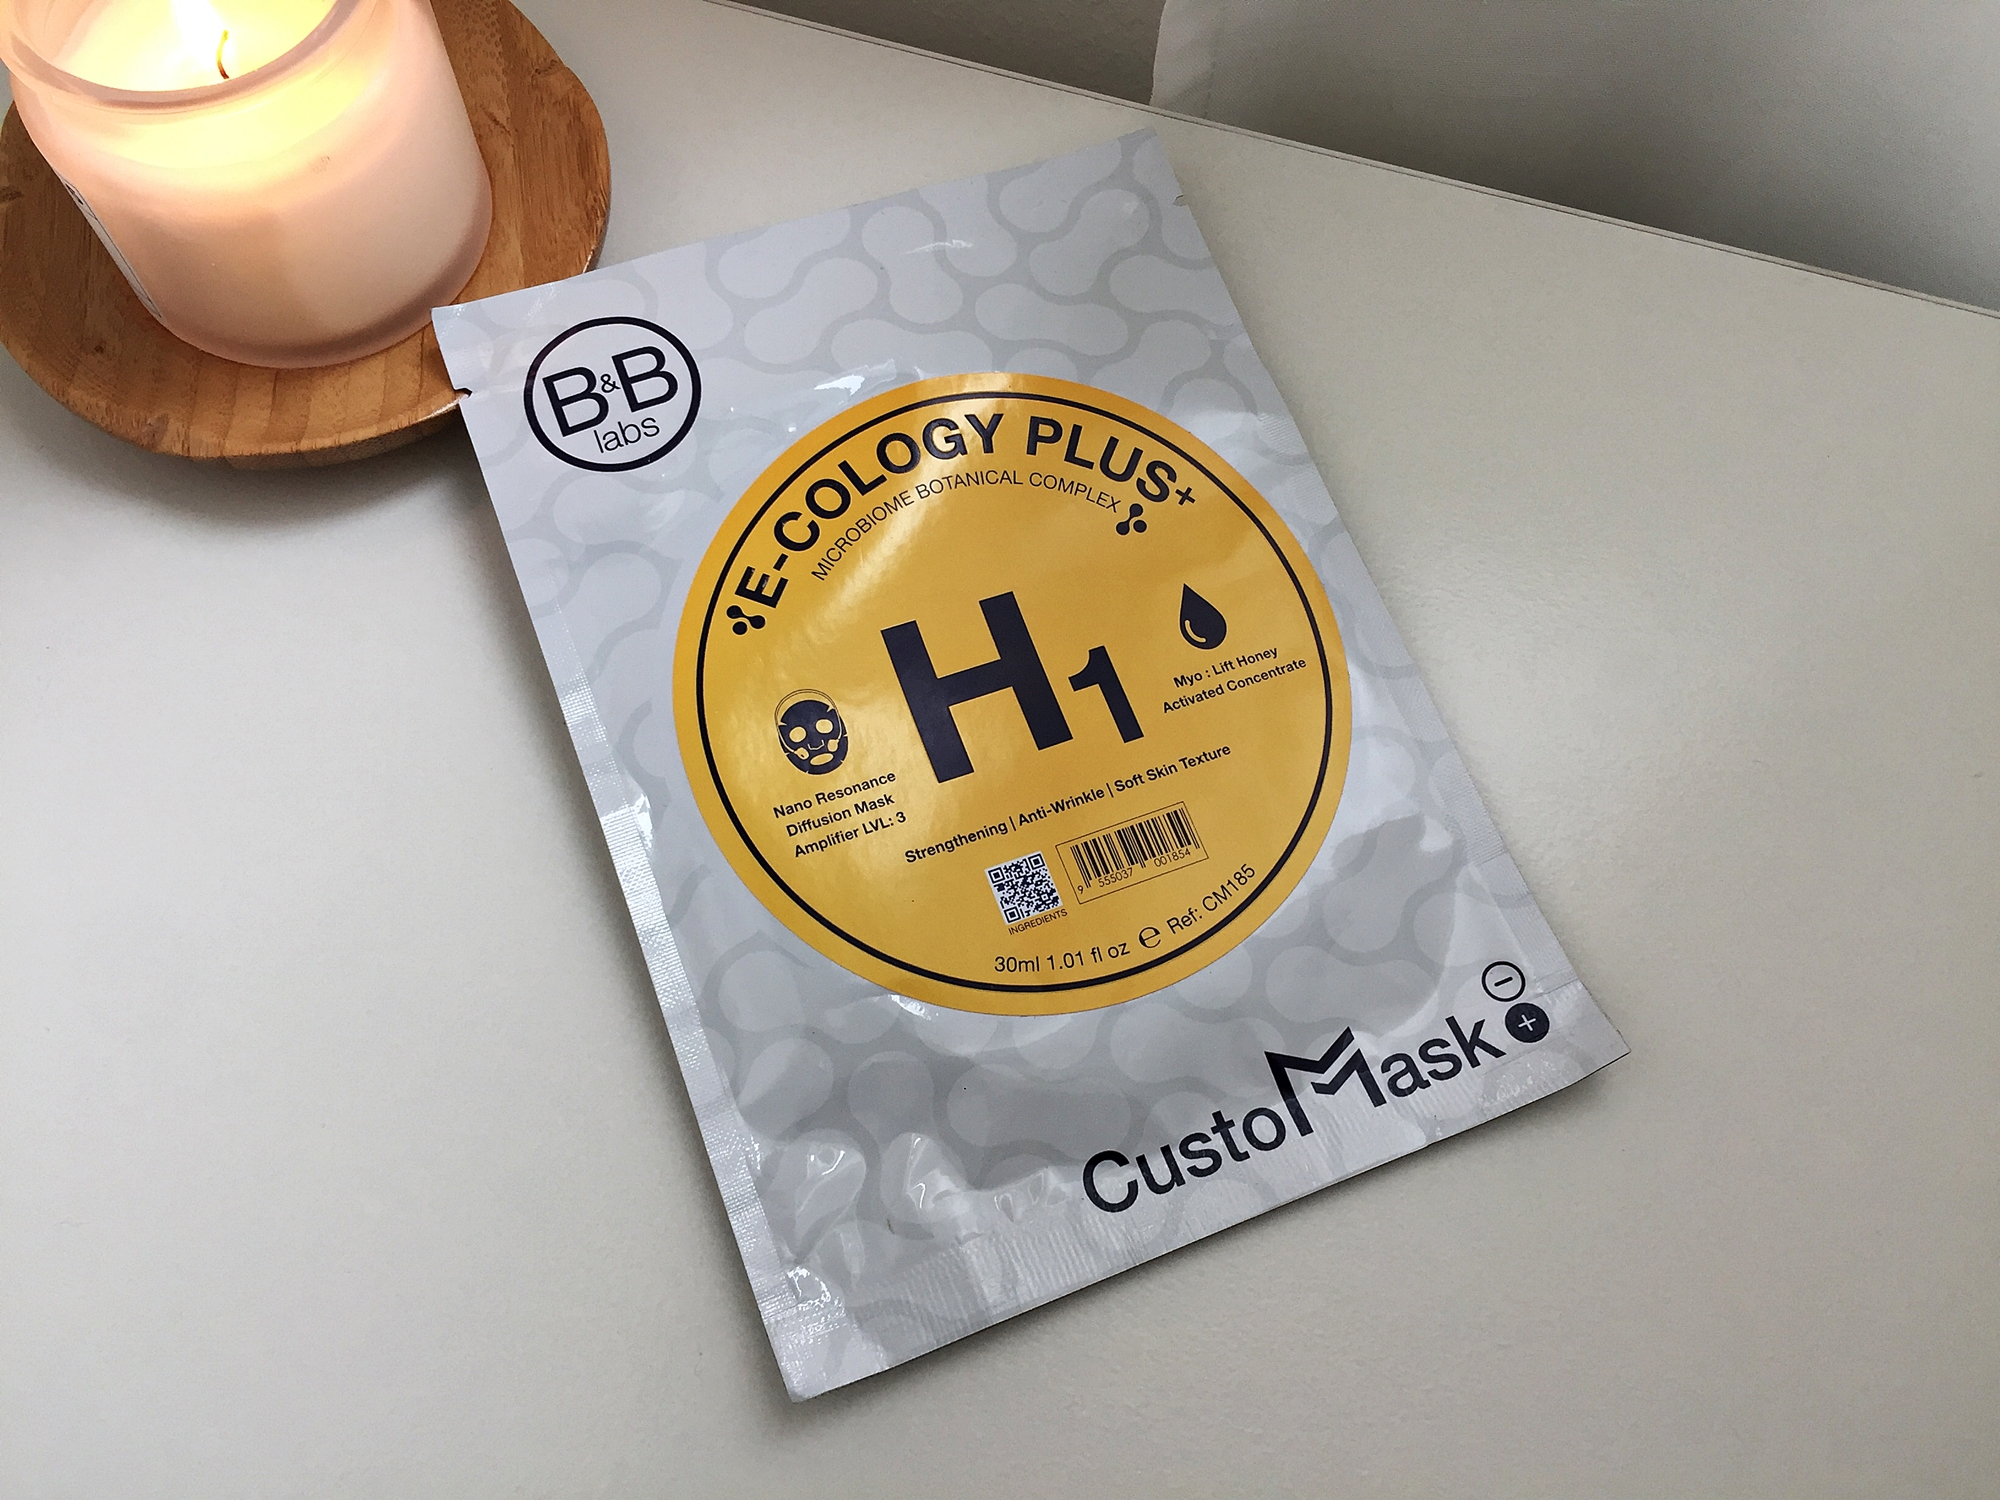 REVIEW | B&B Labs CustoMask #H1 Nano Resonance + Myo:Lift Honey